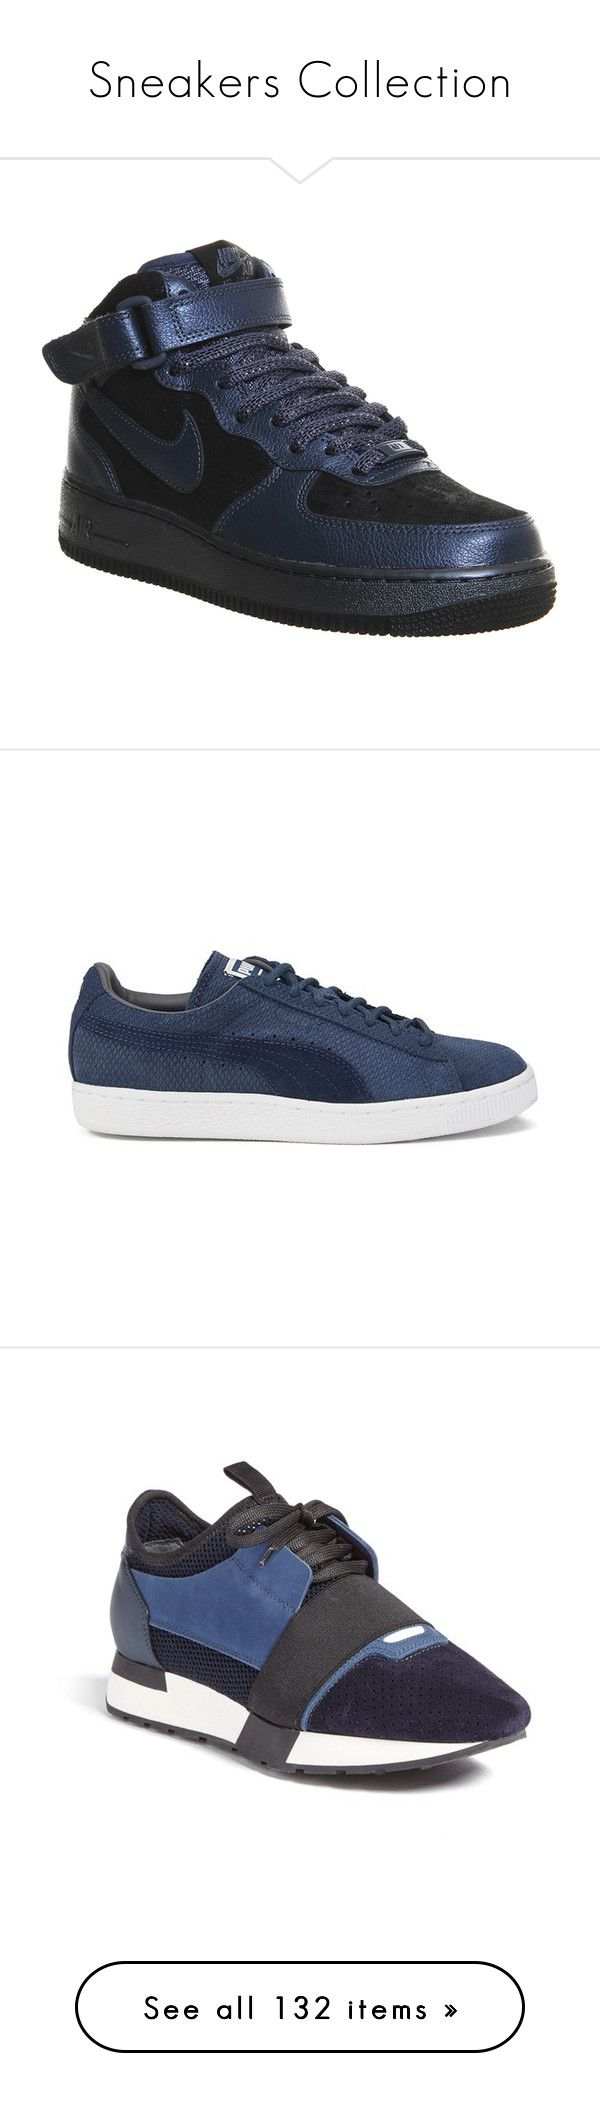 """""""Sneakers Collection"""" by tamara-40 ❤ liked on Polyvore featuring sneakers, 2015, shoes, laced shoes, cat sneakers, puma shoes, cat print shoes, lace up sneakers, tory navy en lace up shoes"""